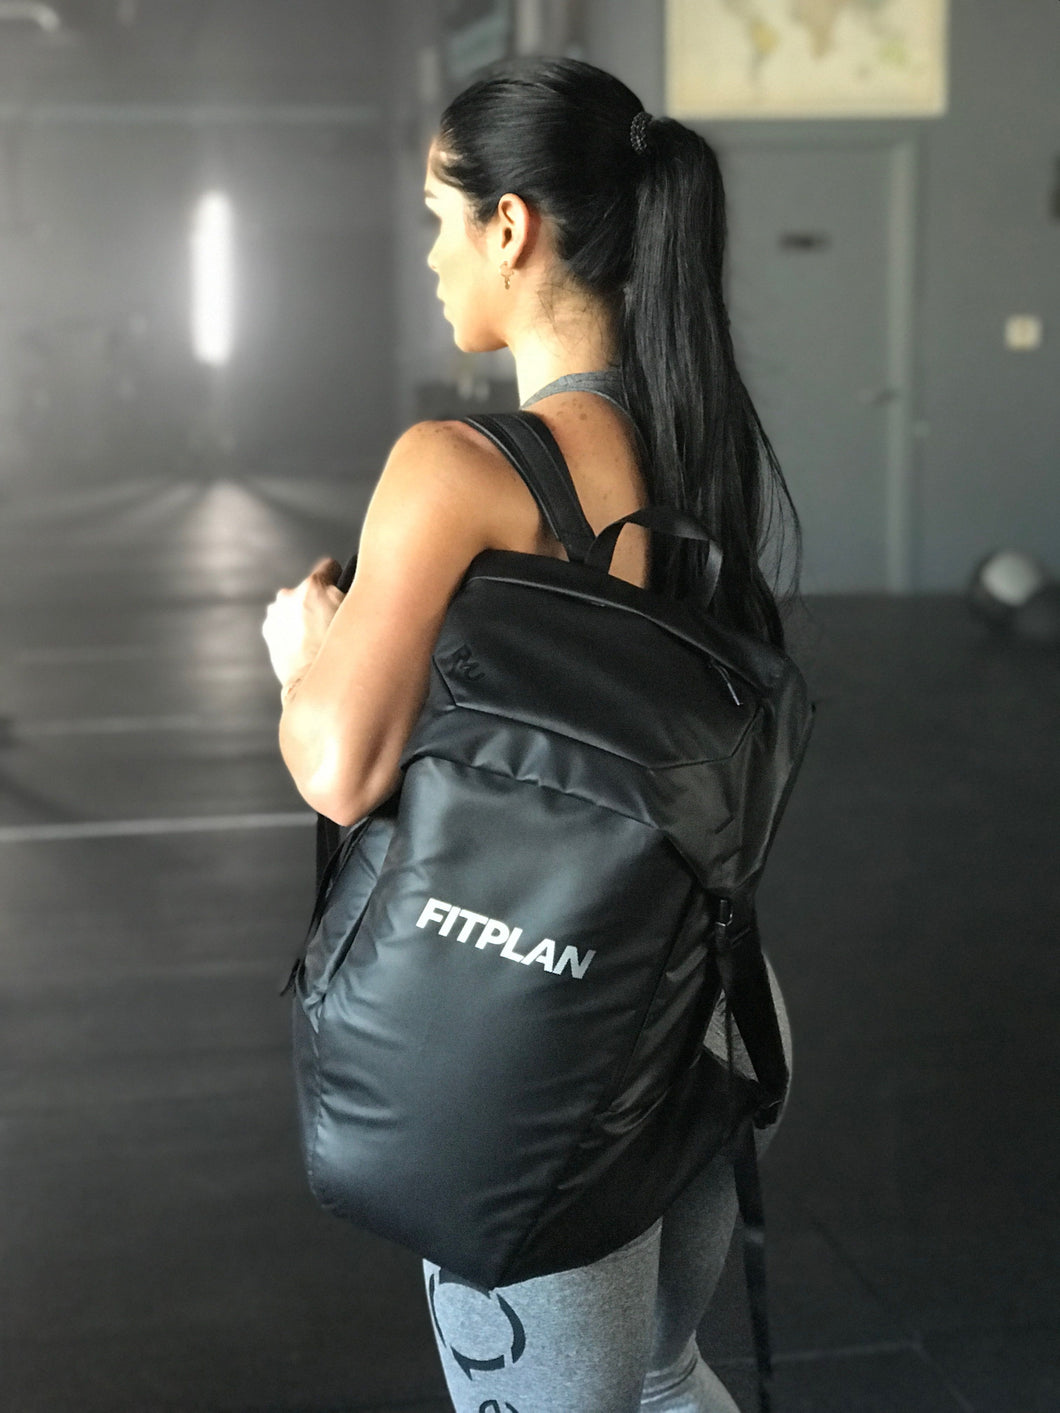 Fitplan Backpack